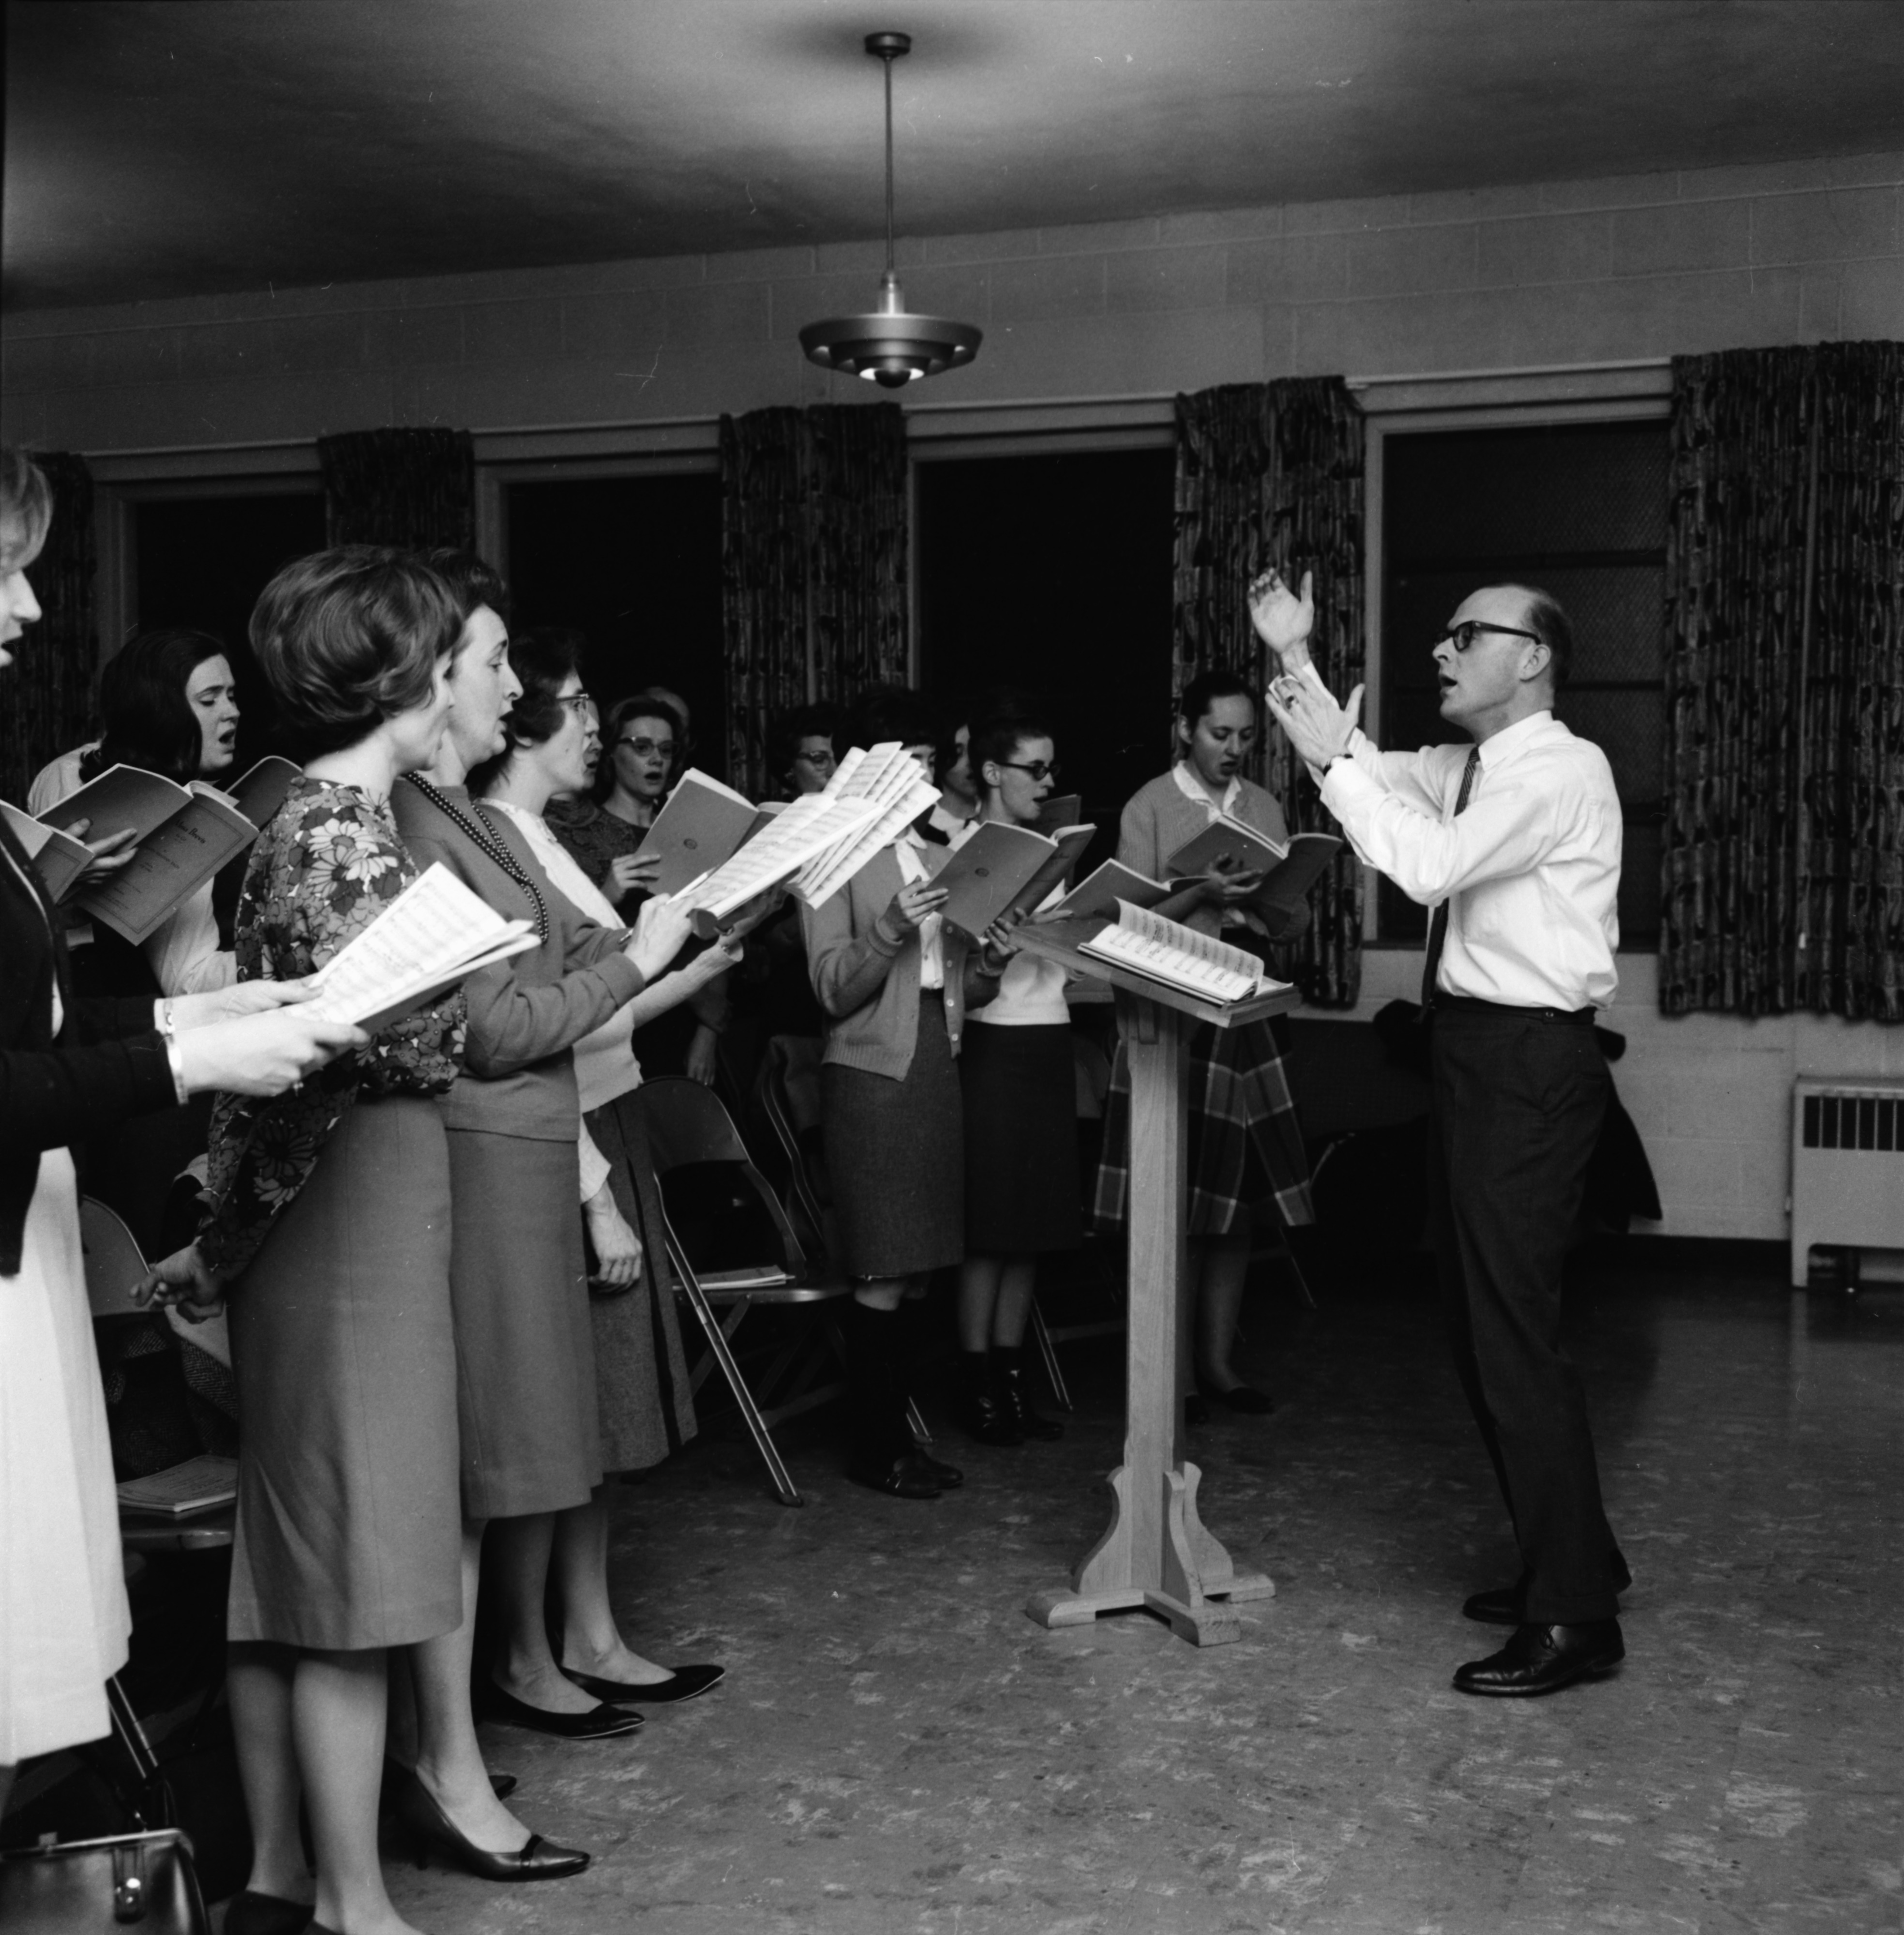 Baptist Church Cantata Singers, March 1965 image